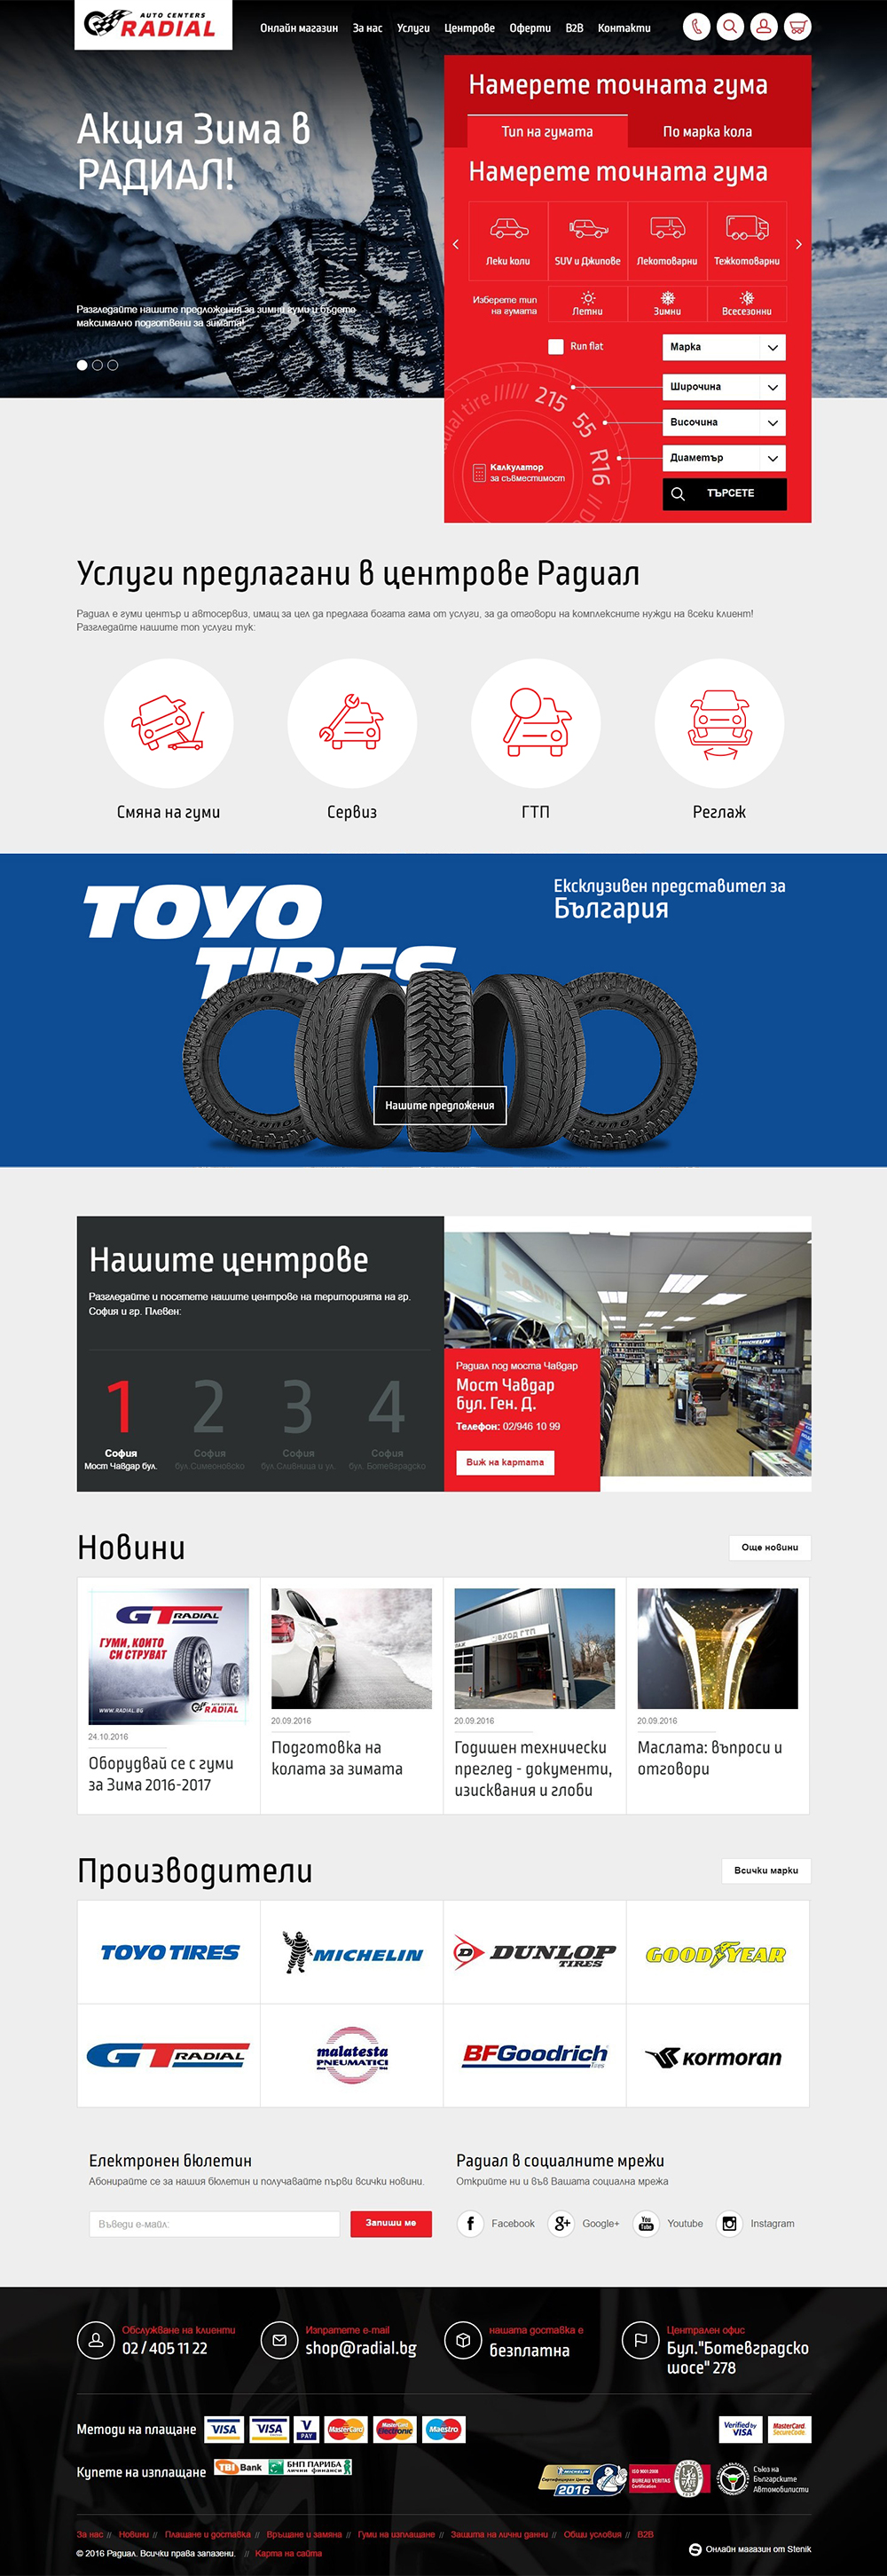 Online store for automotive chain Radial, Radial - Online Shops, Stenik, Magento